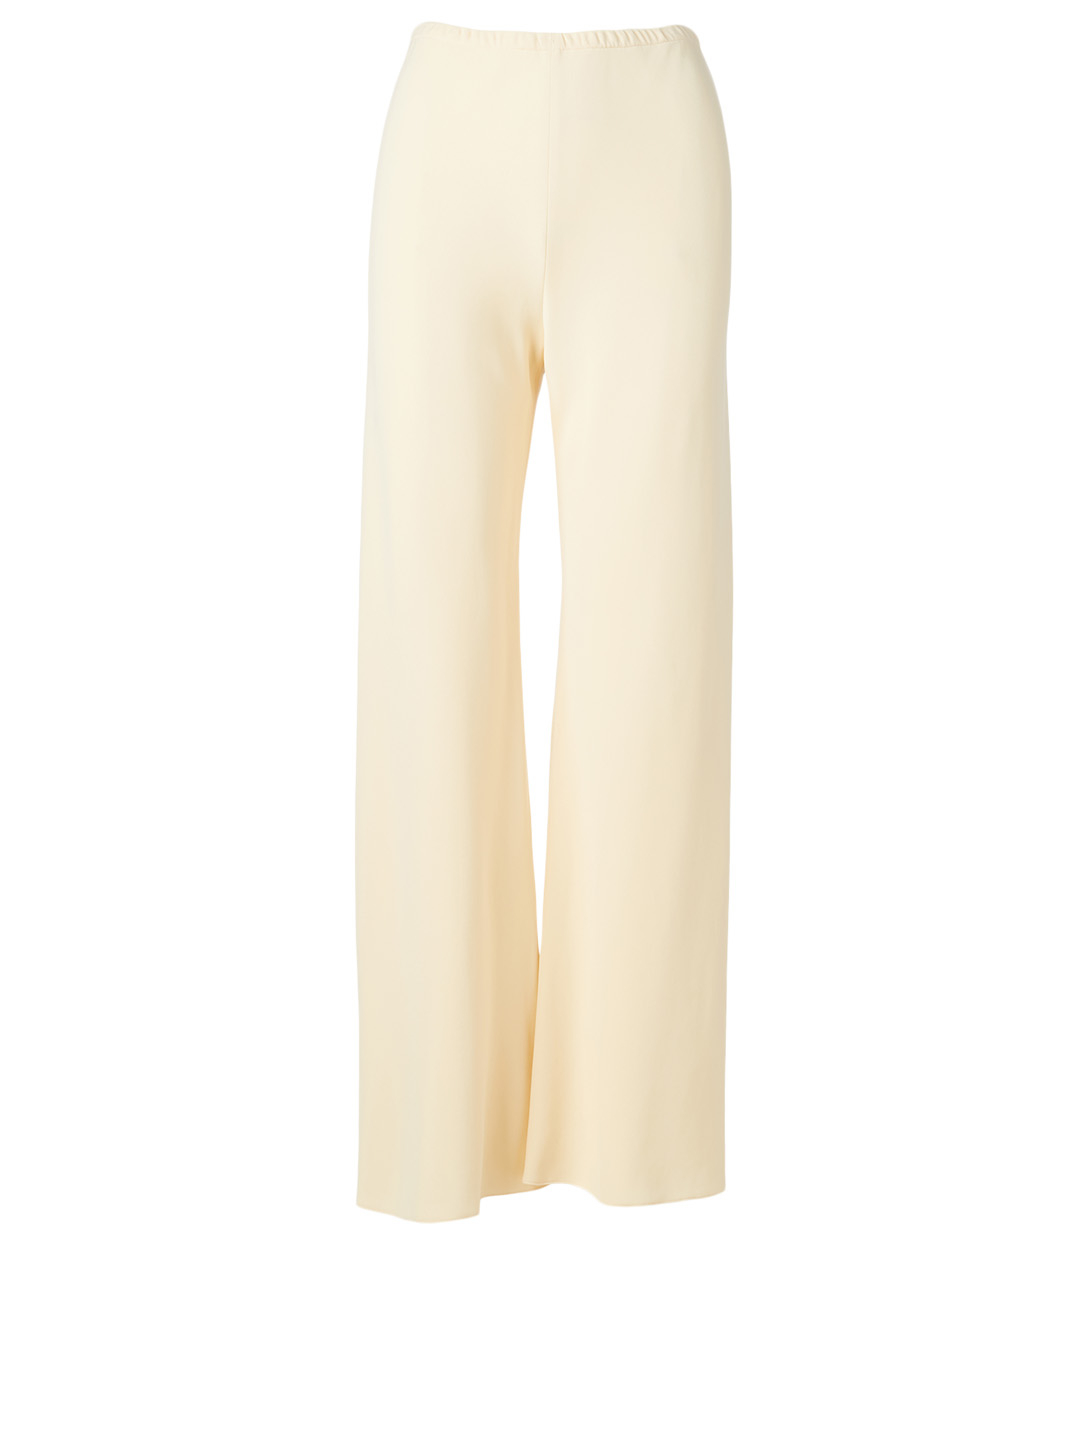 THE ROW Gala Pants Women's White